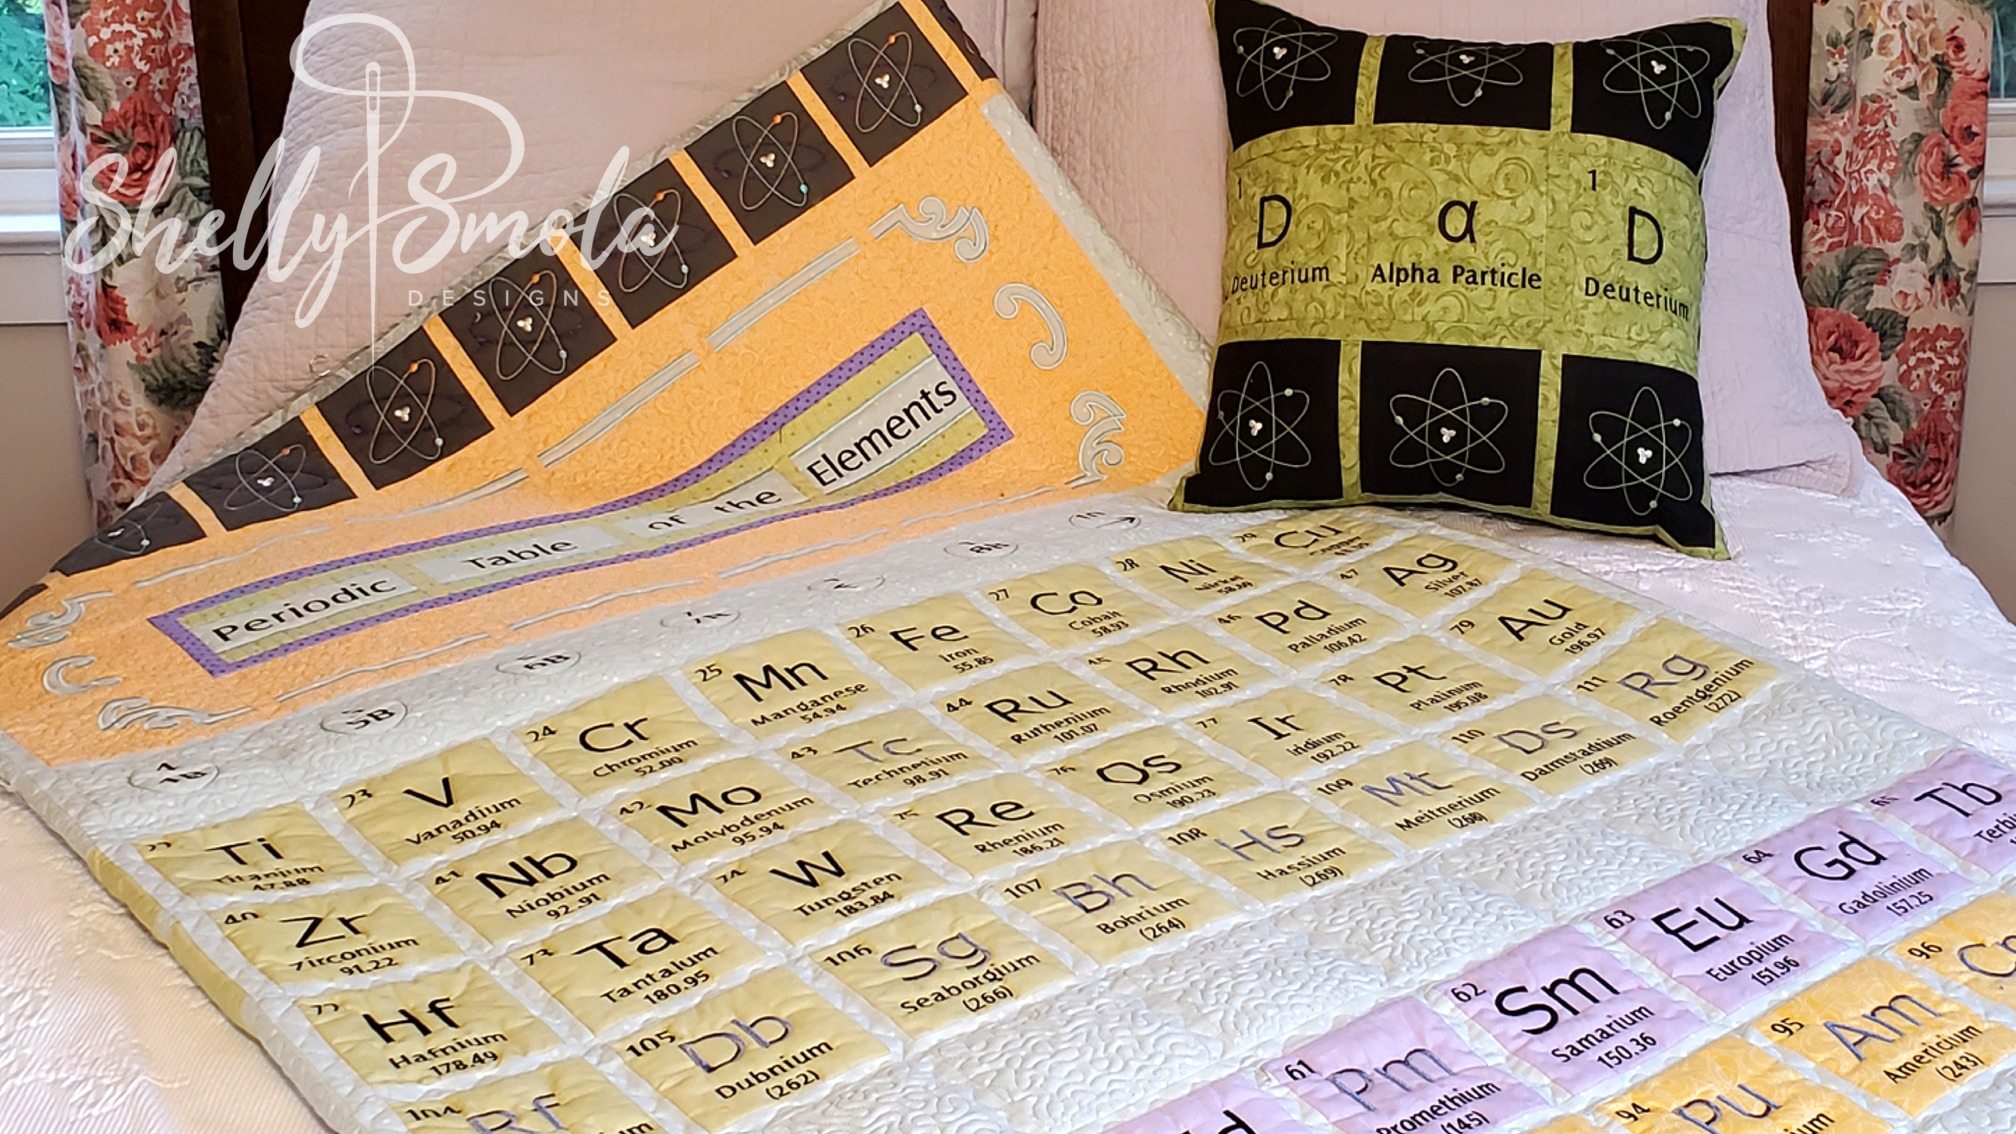 Periodic Table of the Elements by Shelly Smola